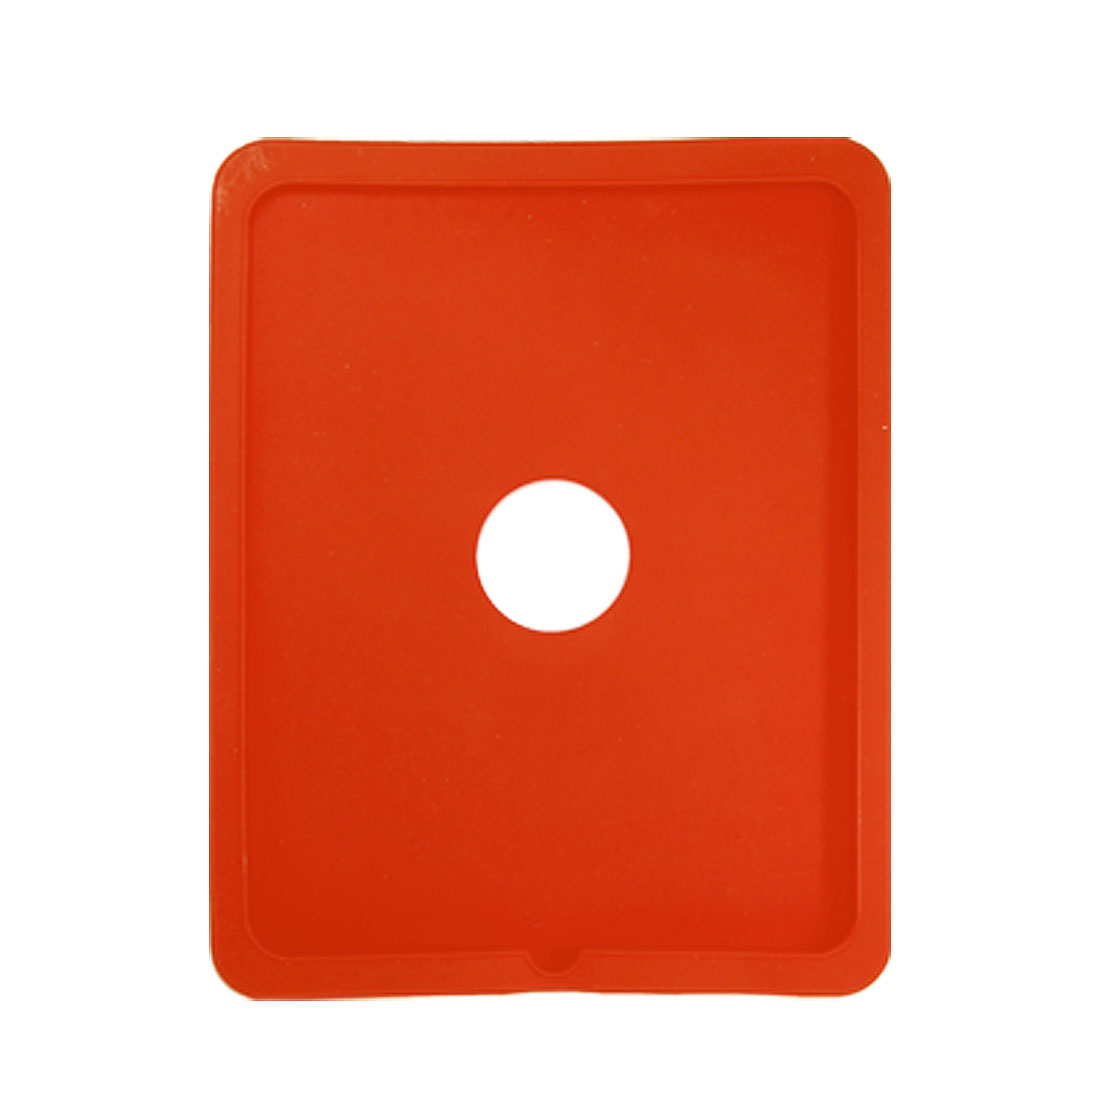 Silicone Soft Smooth Case Skin for Apple iPad 1